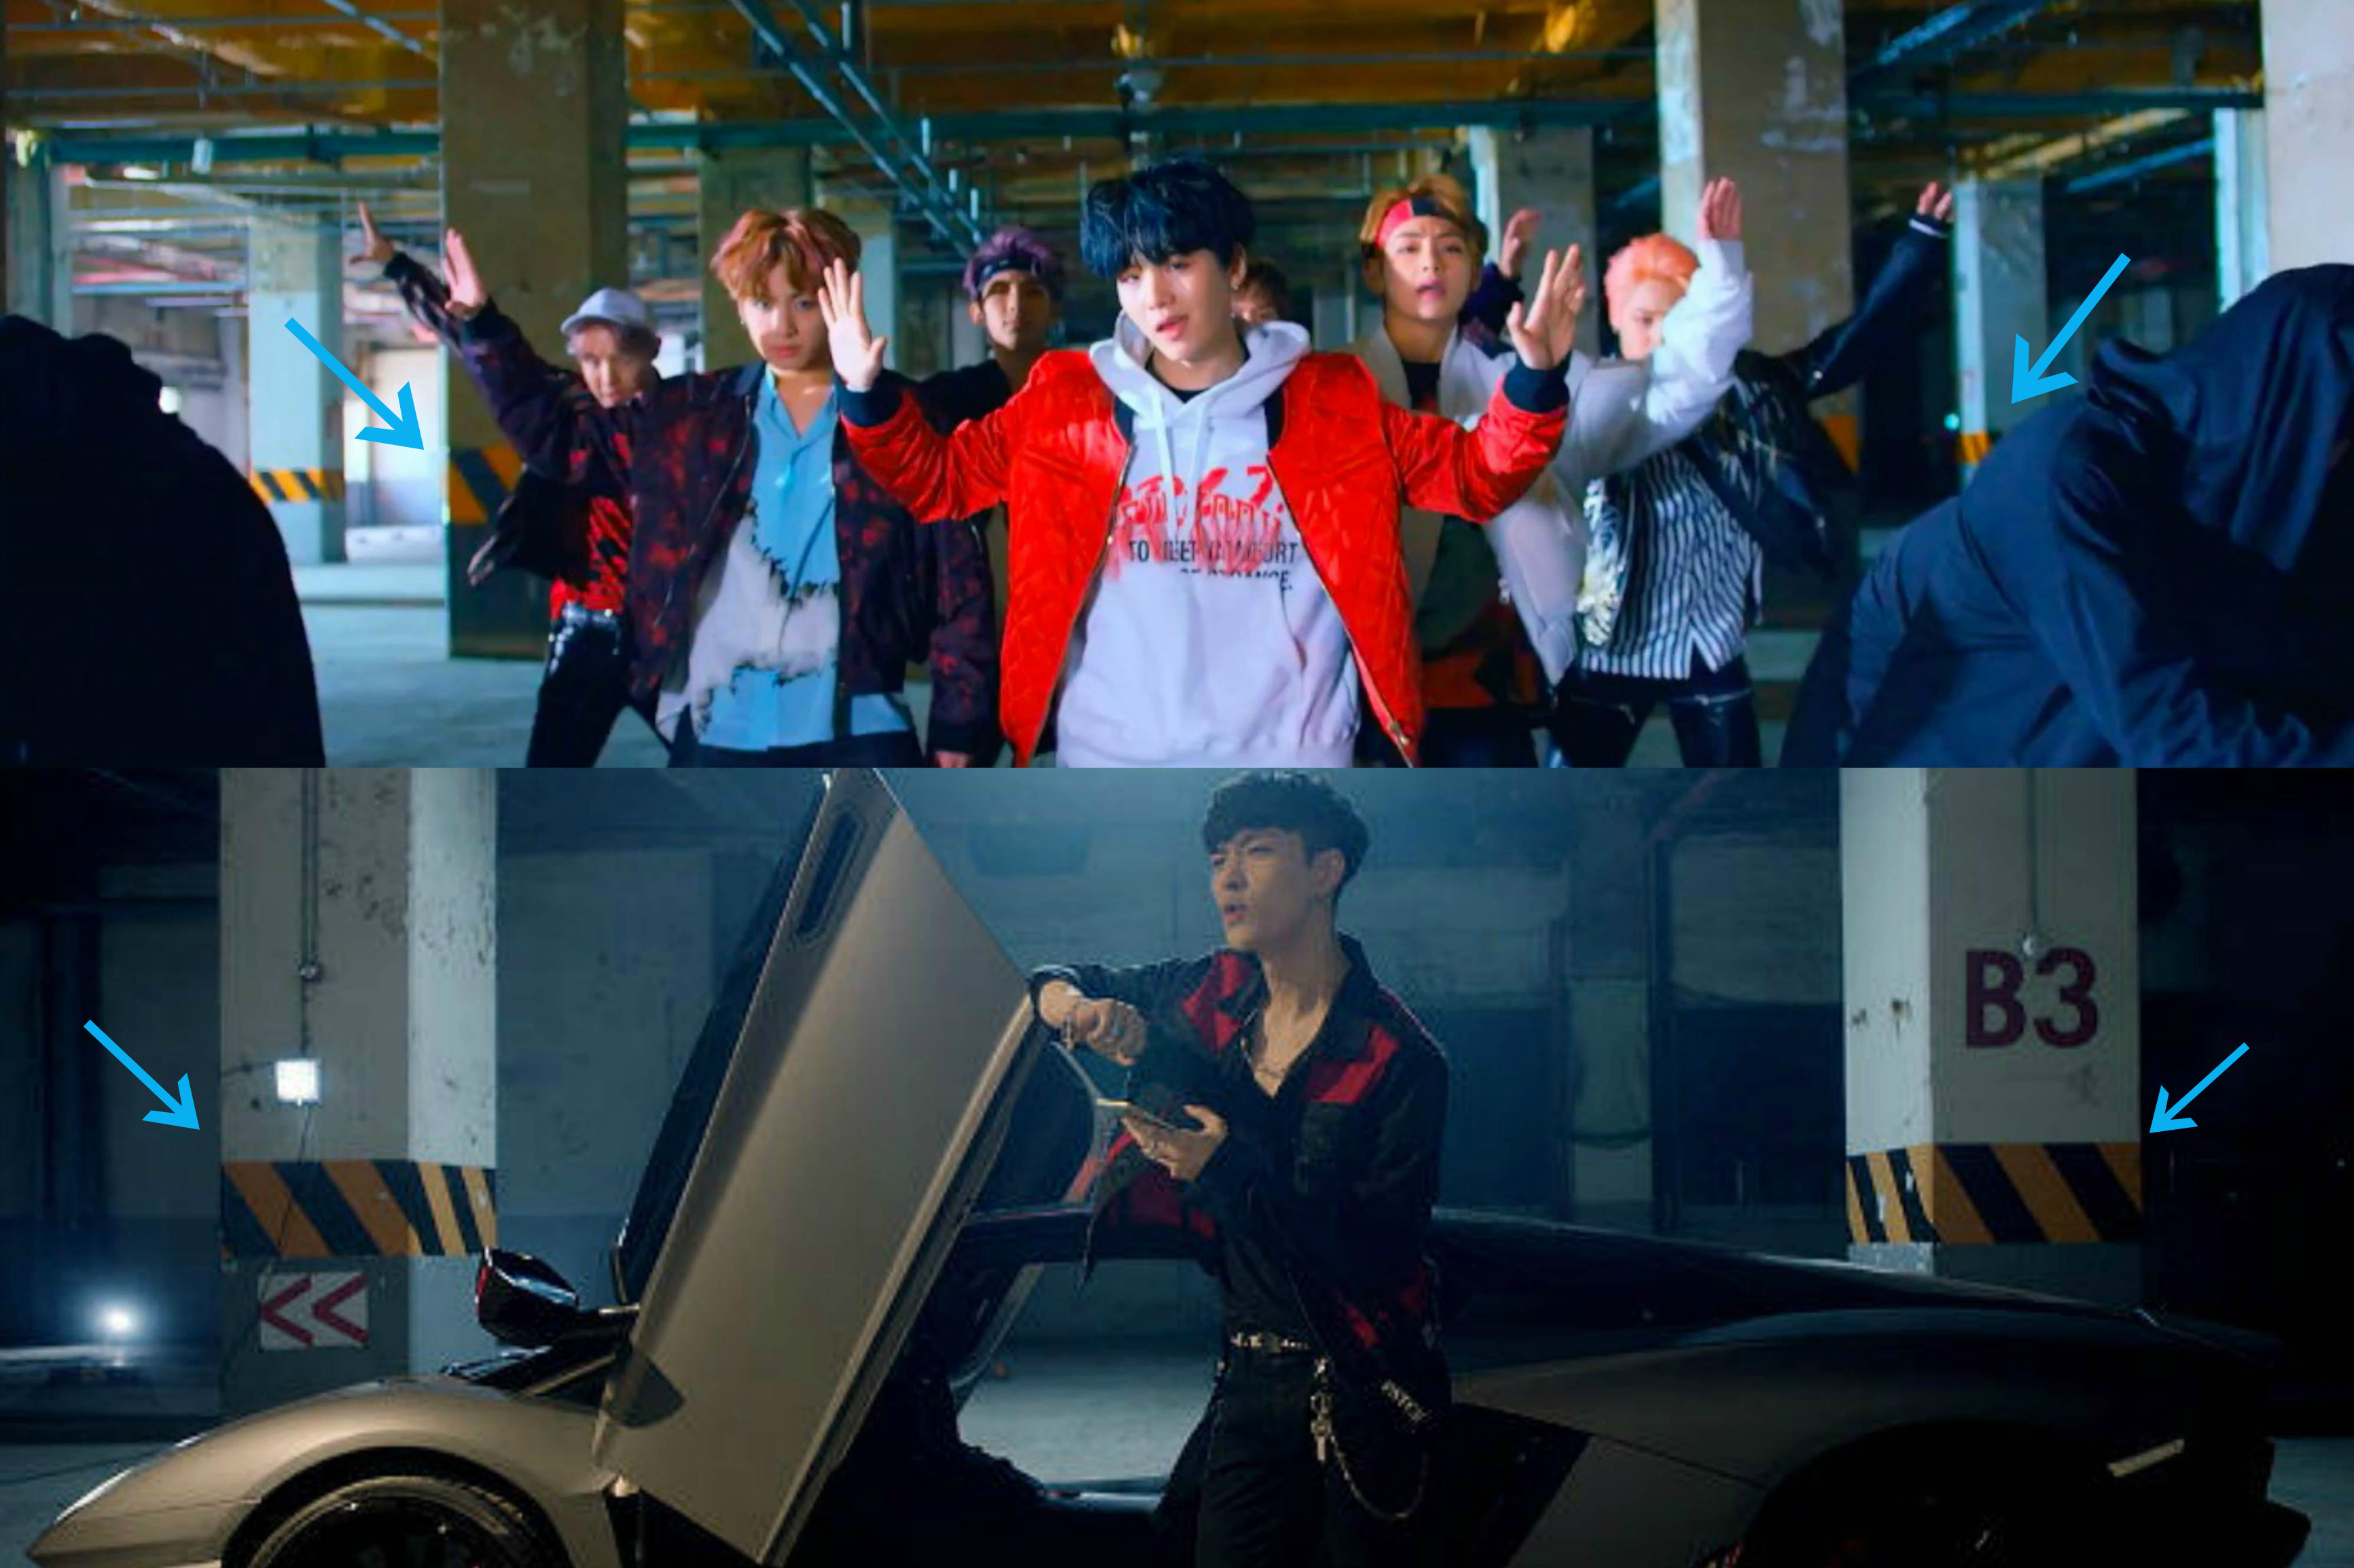 12 Of The Most Popular Sets And Locations Used In K-Pop Music Videos